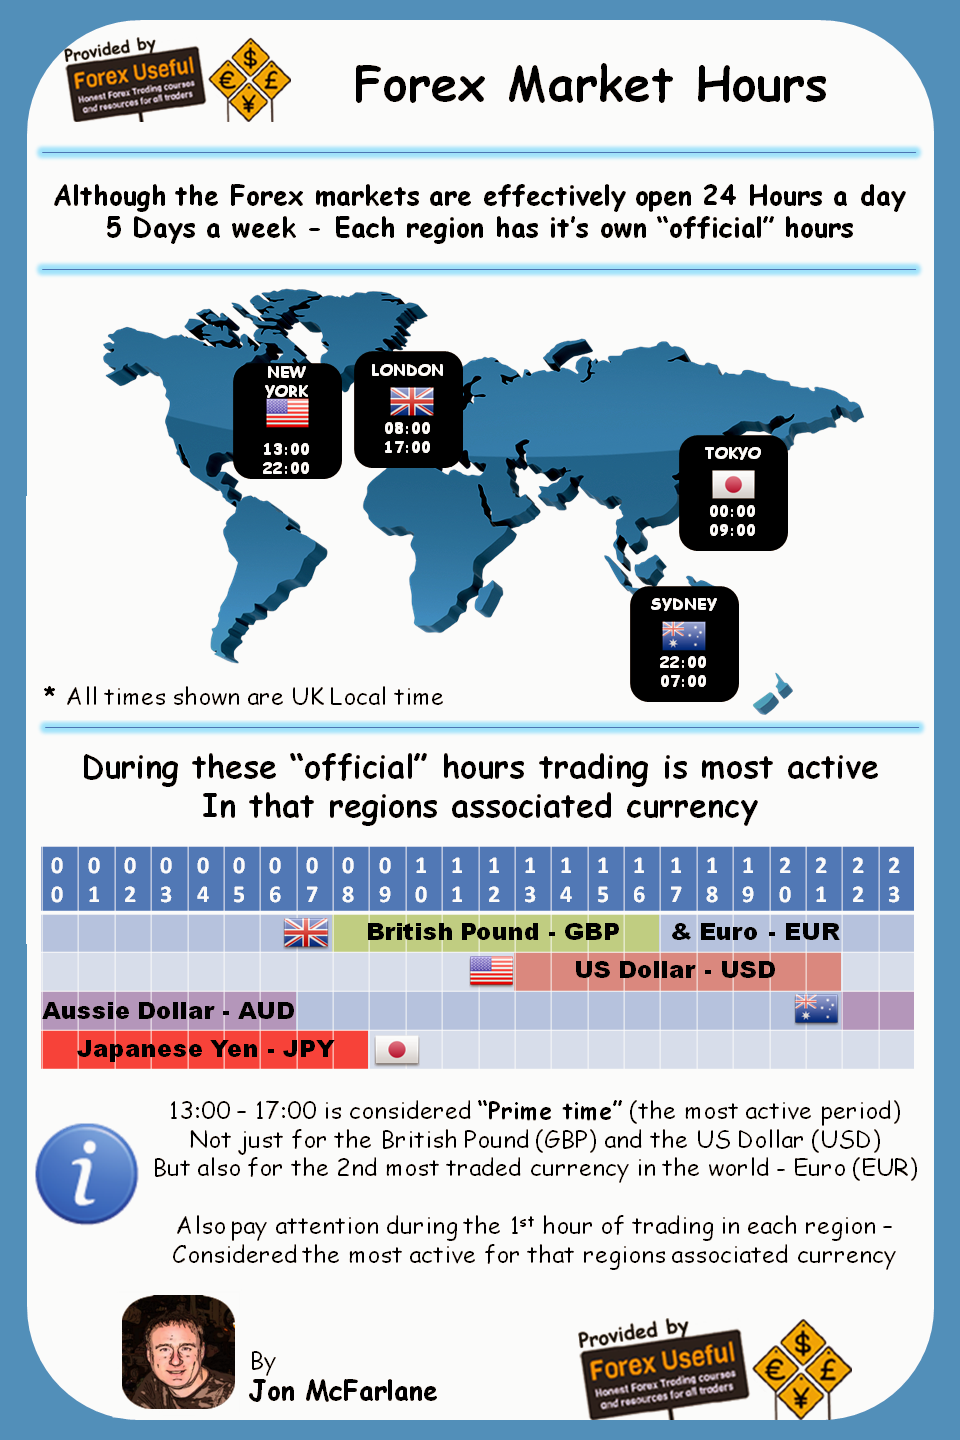 Forex Market Hours Info-Graphic